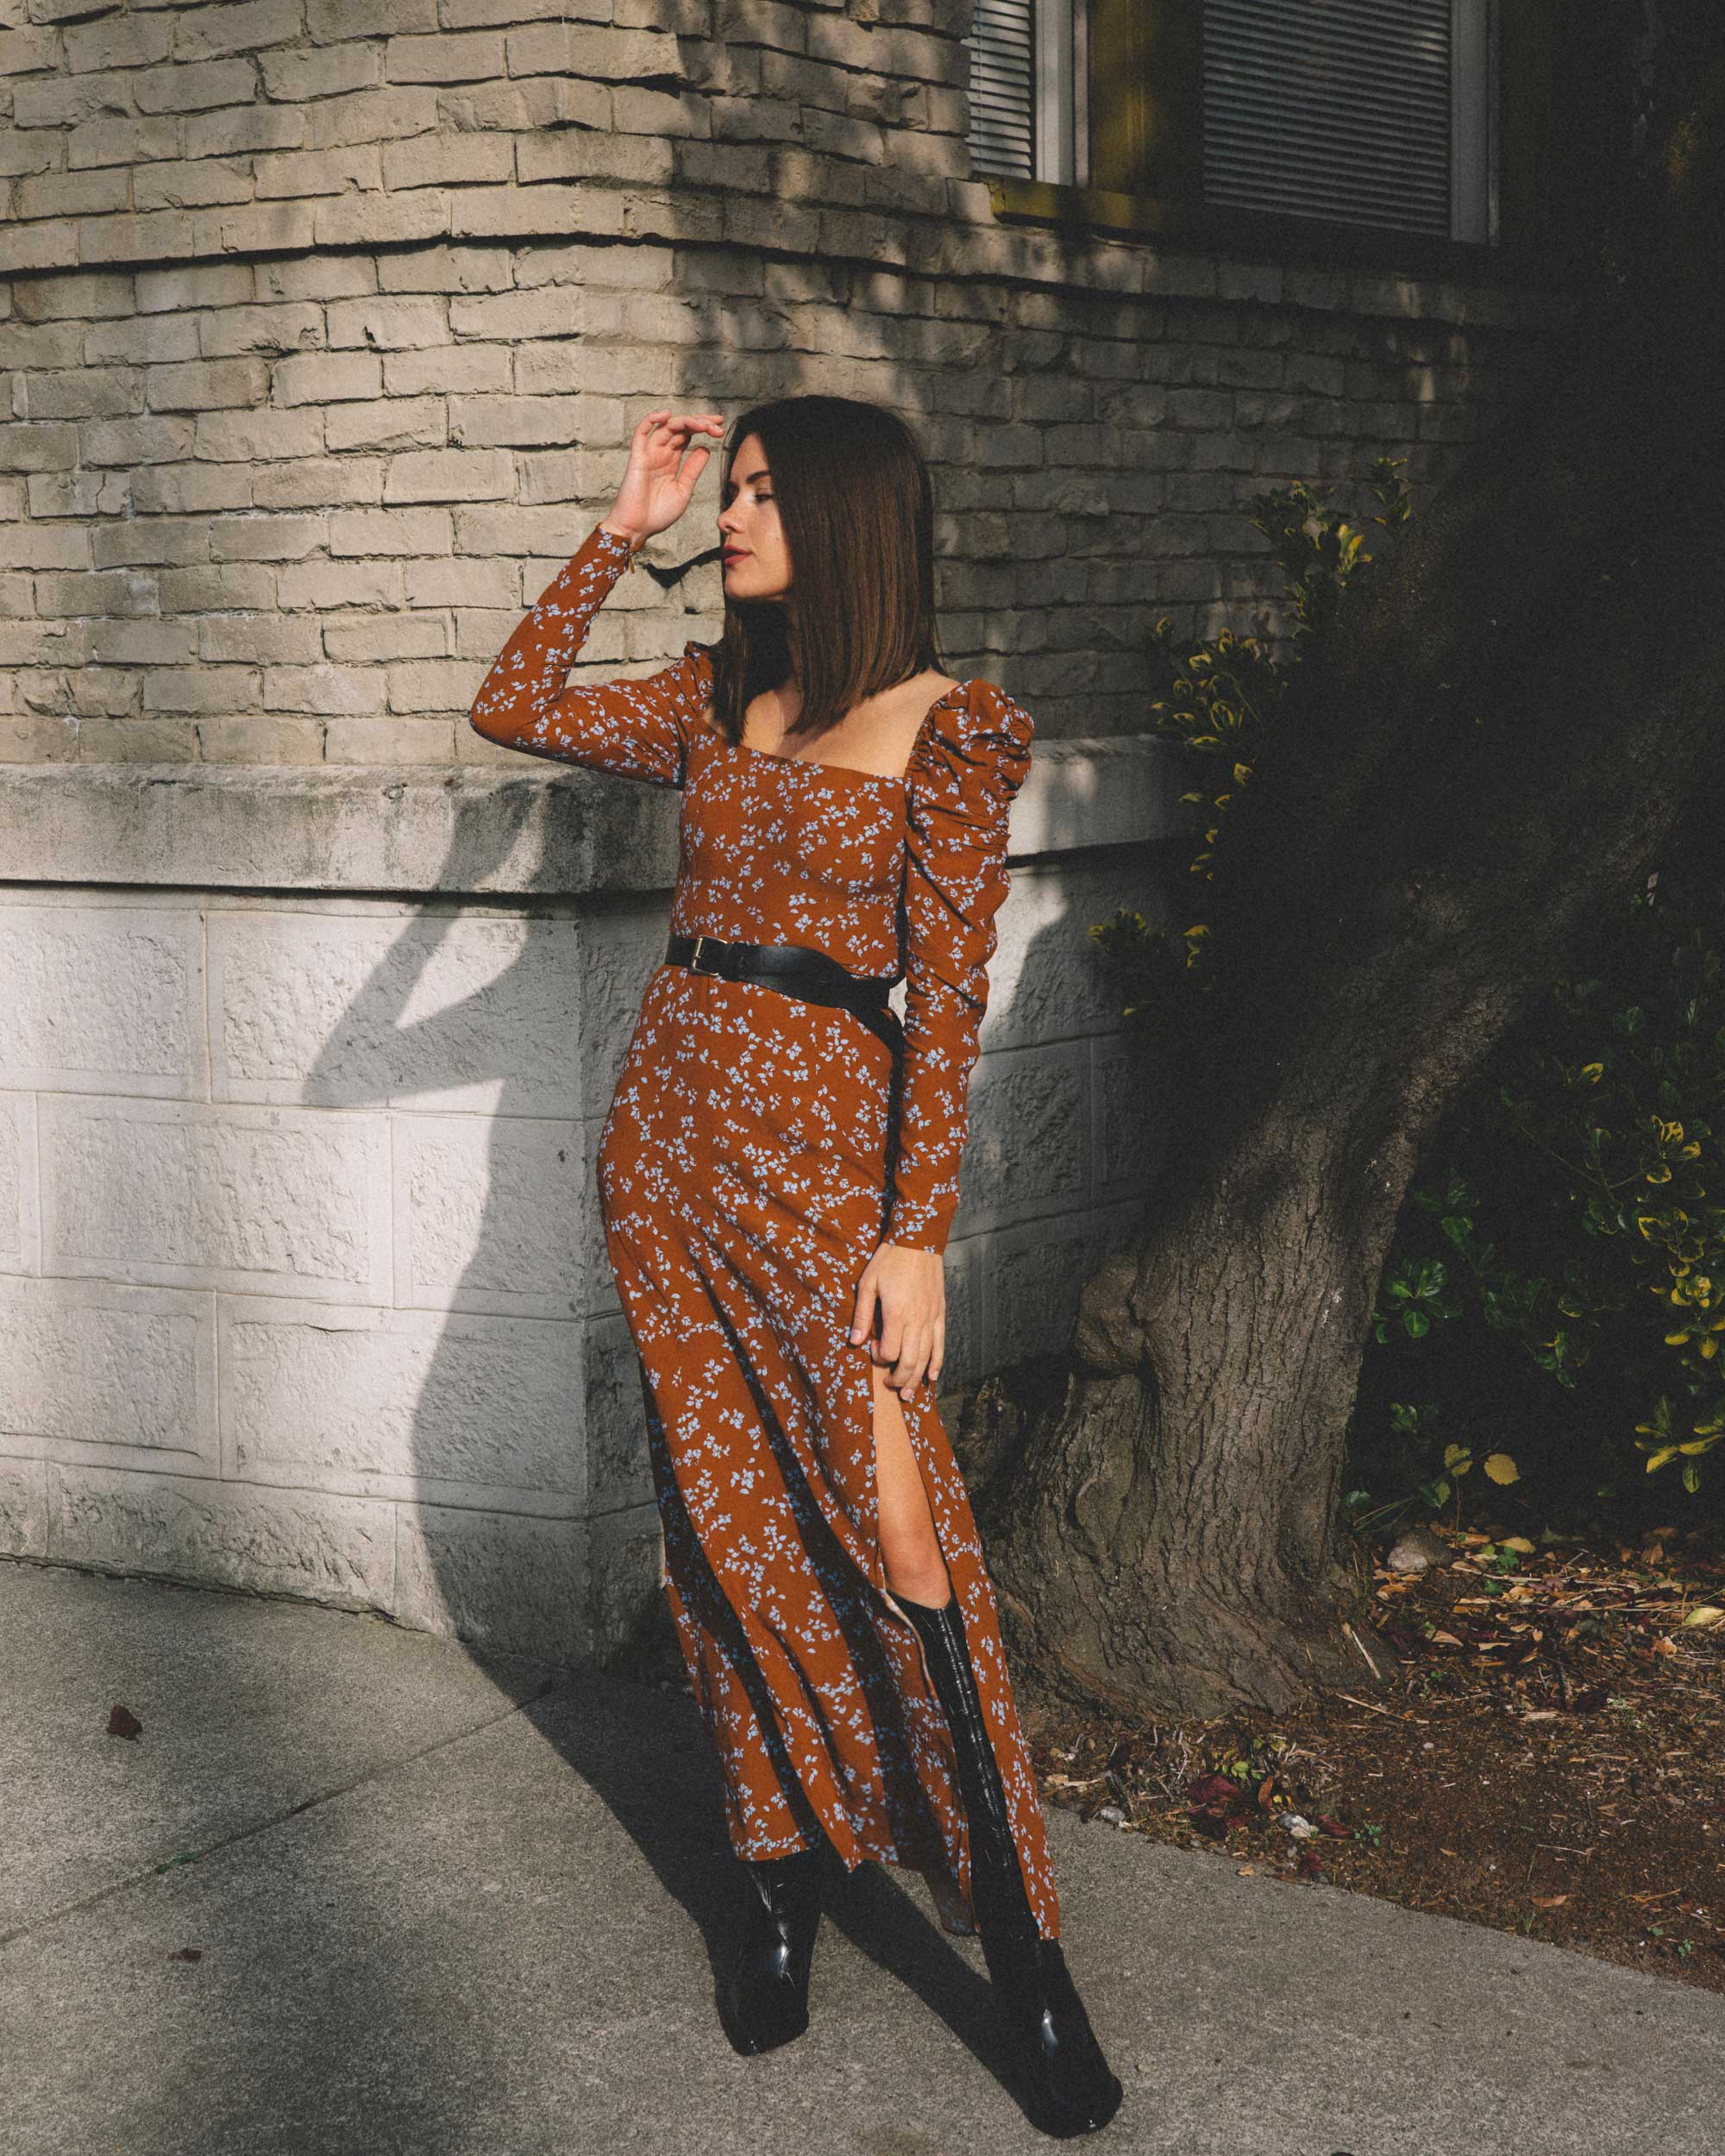 And Other Stories brown ruched floral maxi dress, Sigerson Morrison Karida Black Leather Knee High Boot, fall dress outfit1.jpg